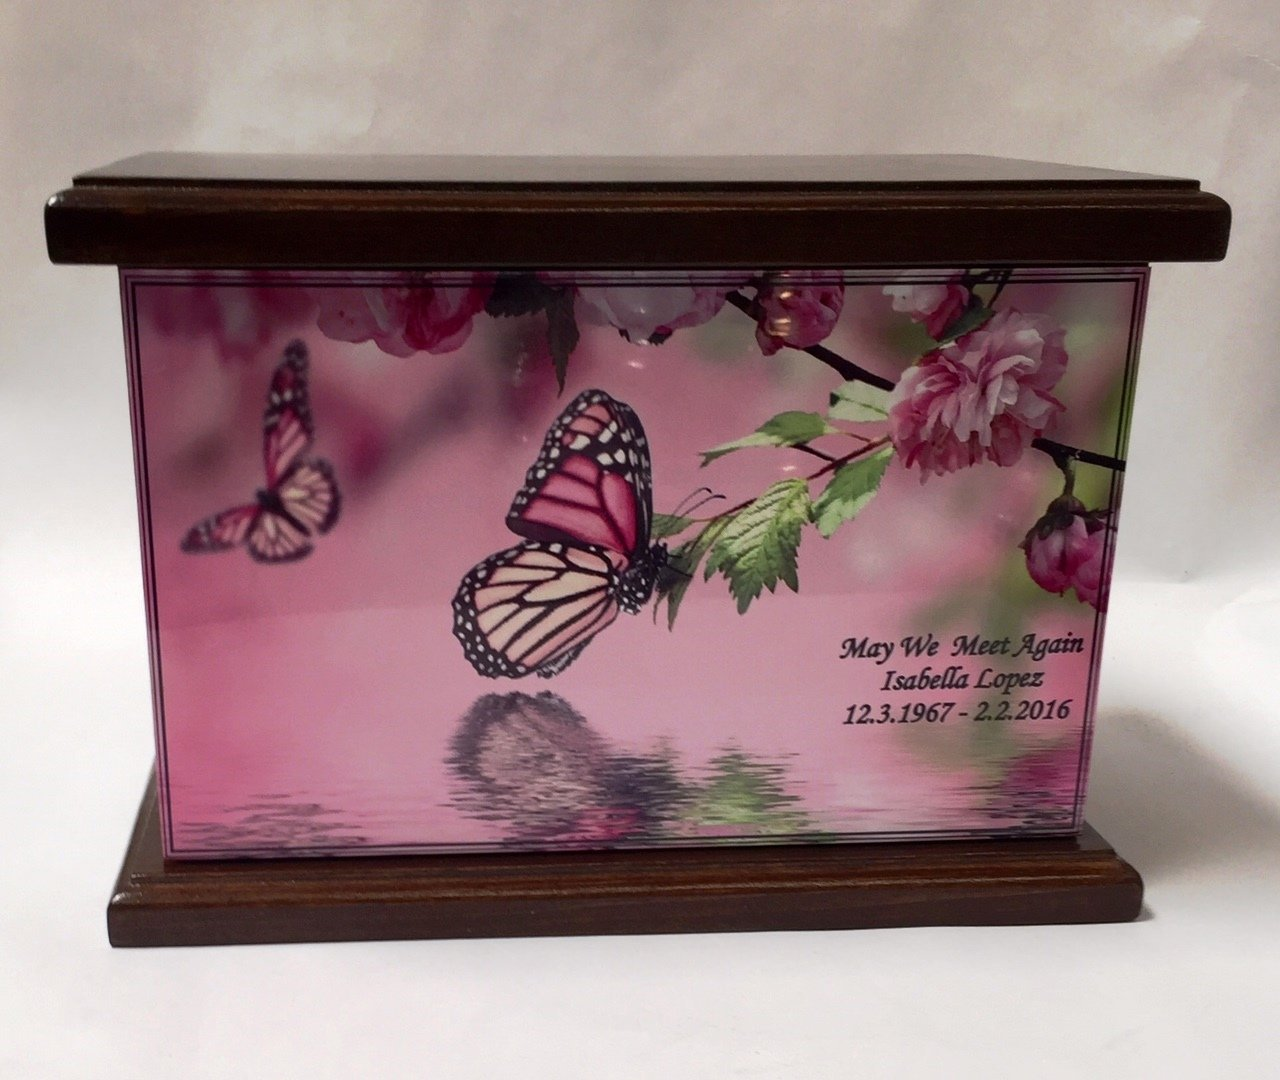 NWA Cremation Urn, Wood Funeral Urn, Butterfly and Flowers Wooden Urn with Engraving